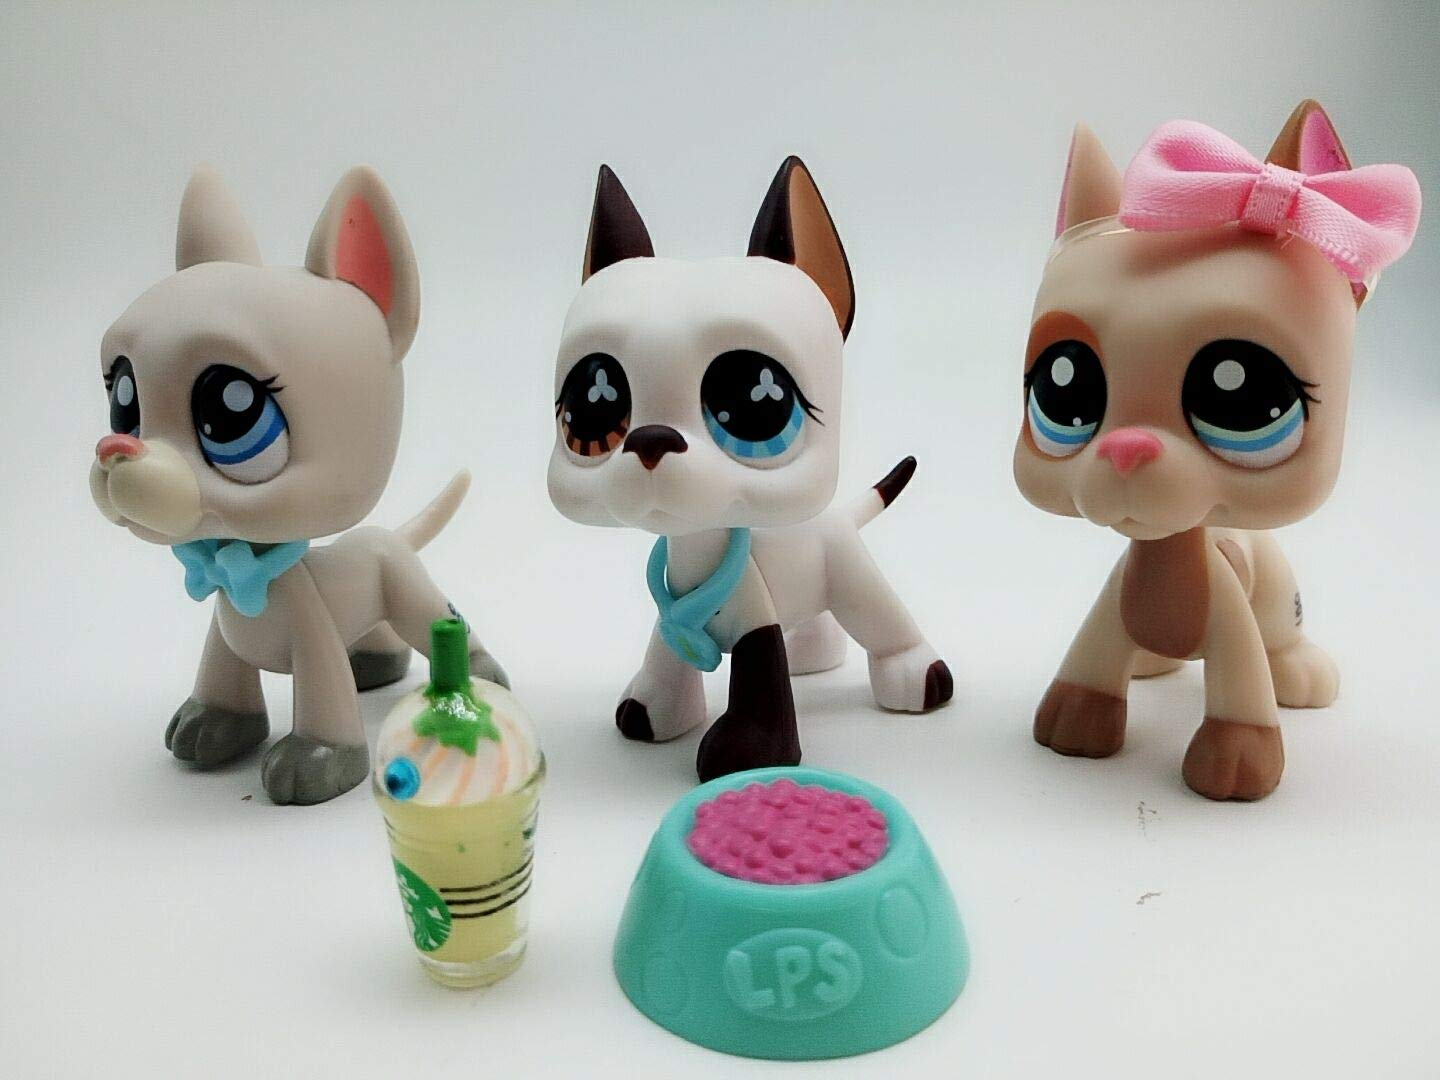 lps Great Dane Dog 3pcs Lot, Lovely Kids lp Puppy #1688#1647#750 lps Great Dane Dog Tan and Brown Blue Eyes White and Orange Eyes Rare Figures